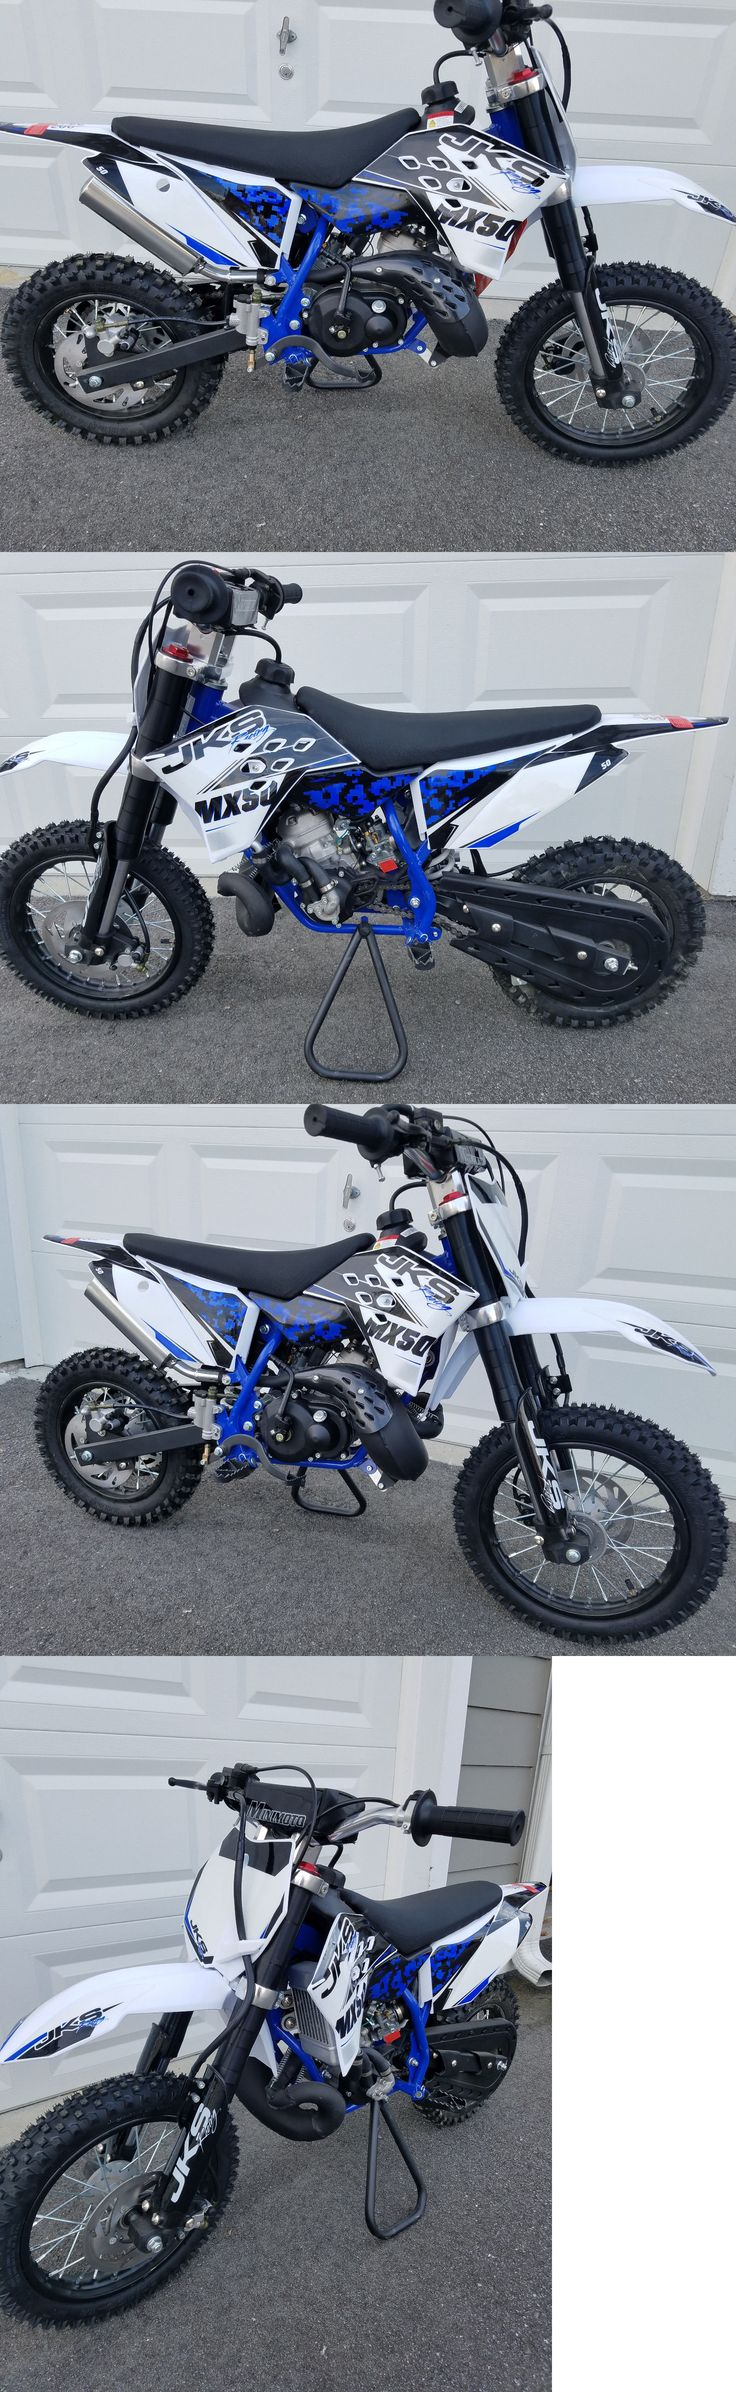 Other Scooters 11329: 49Cc 50Cc Dirt Bike Jks Racing Mx-50 Nitro Nrg Water Cooled -> BUY IT NOW ONLY: $1320 on eBay!